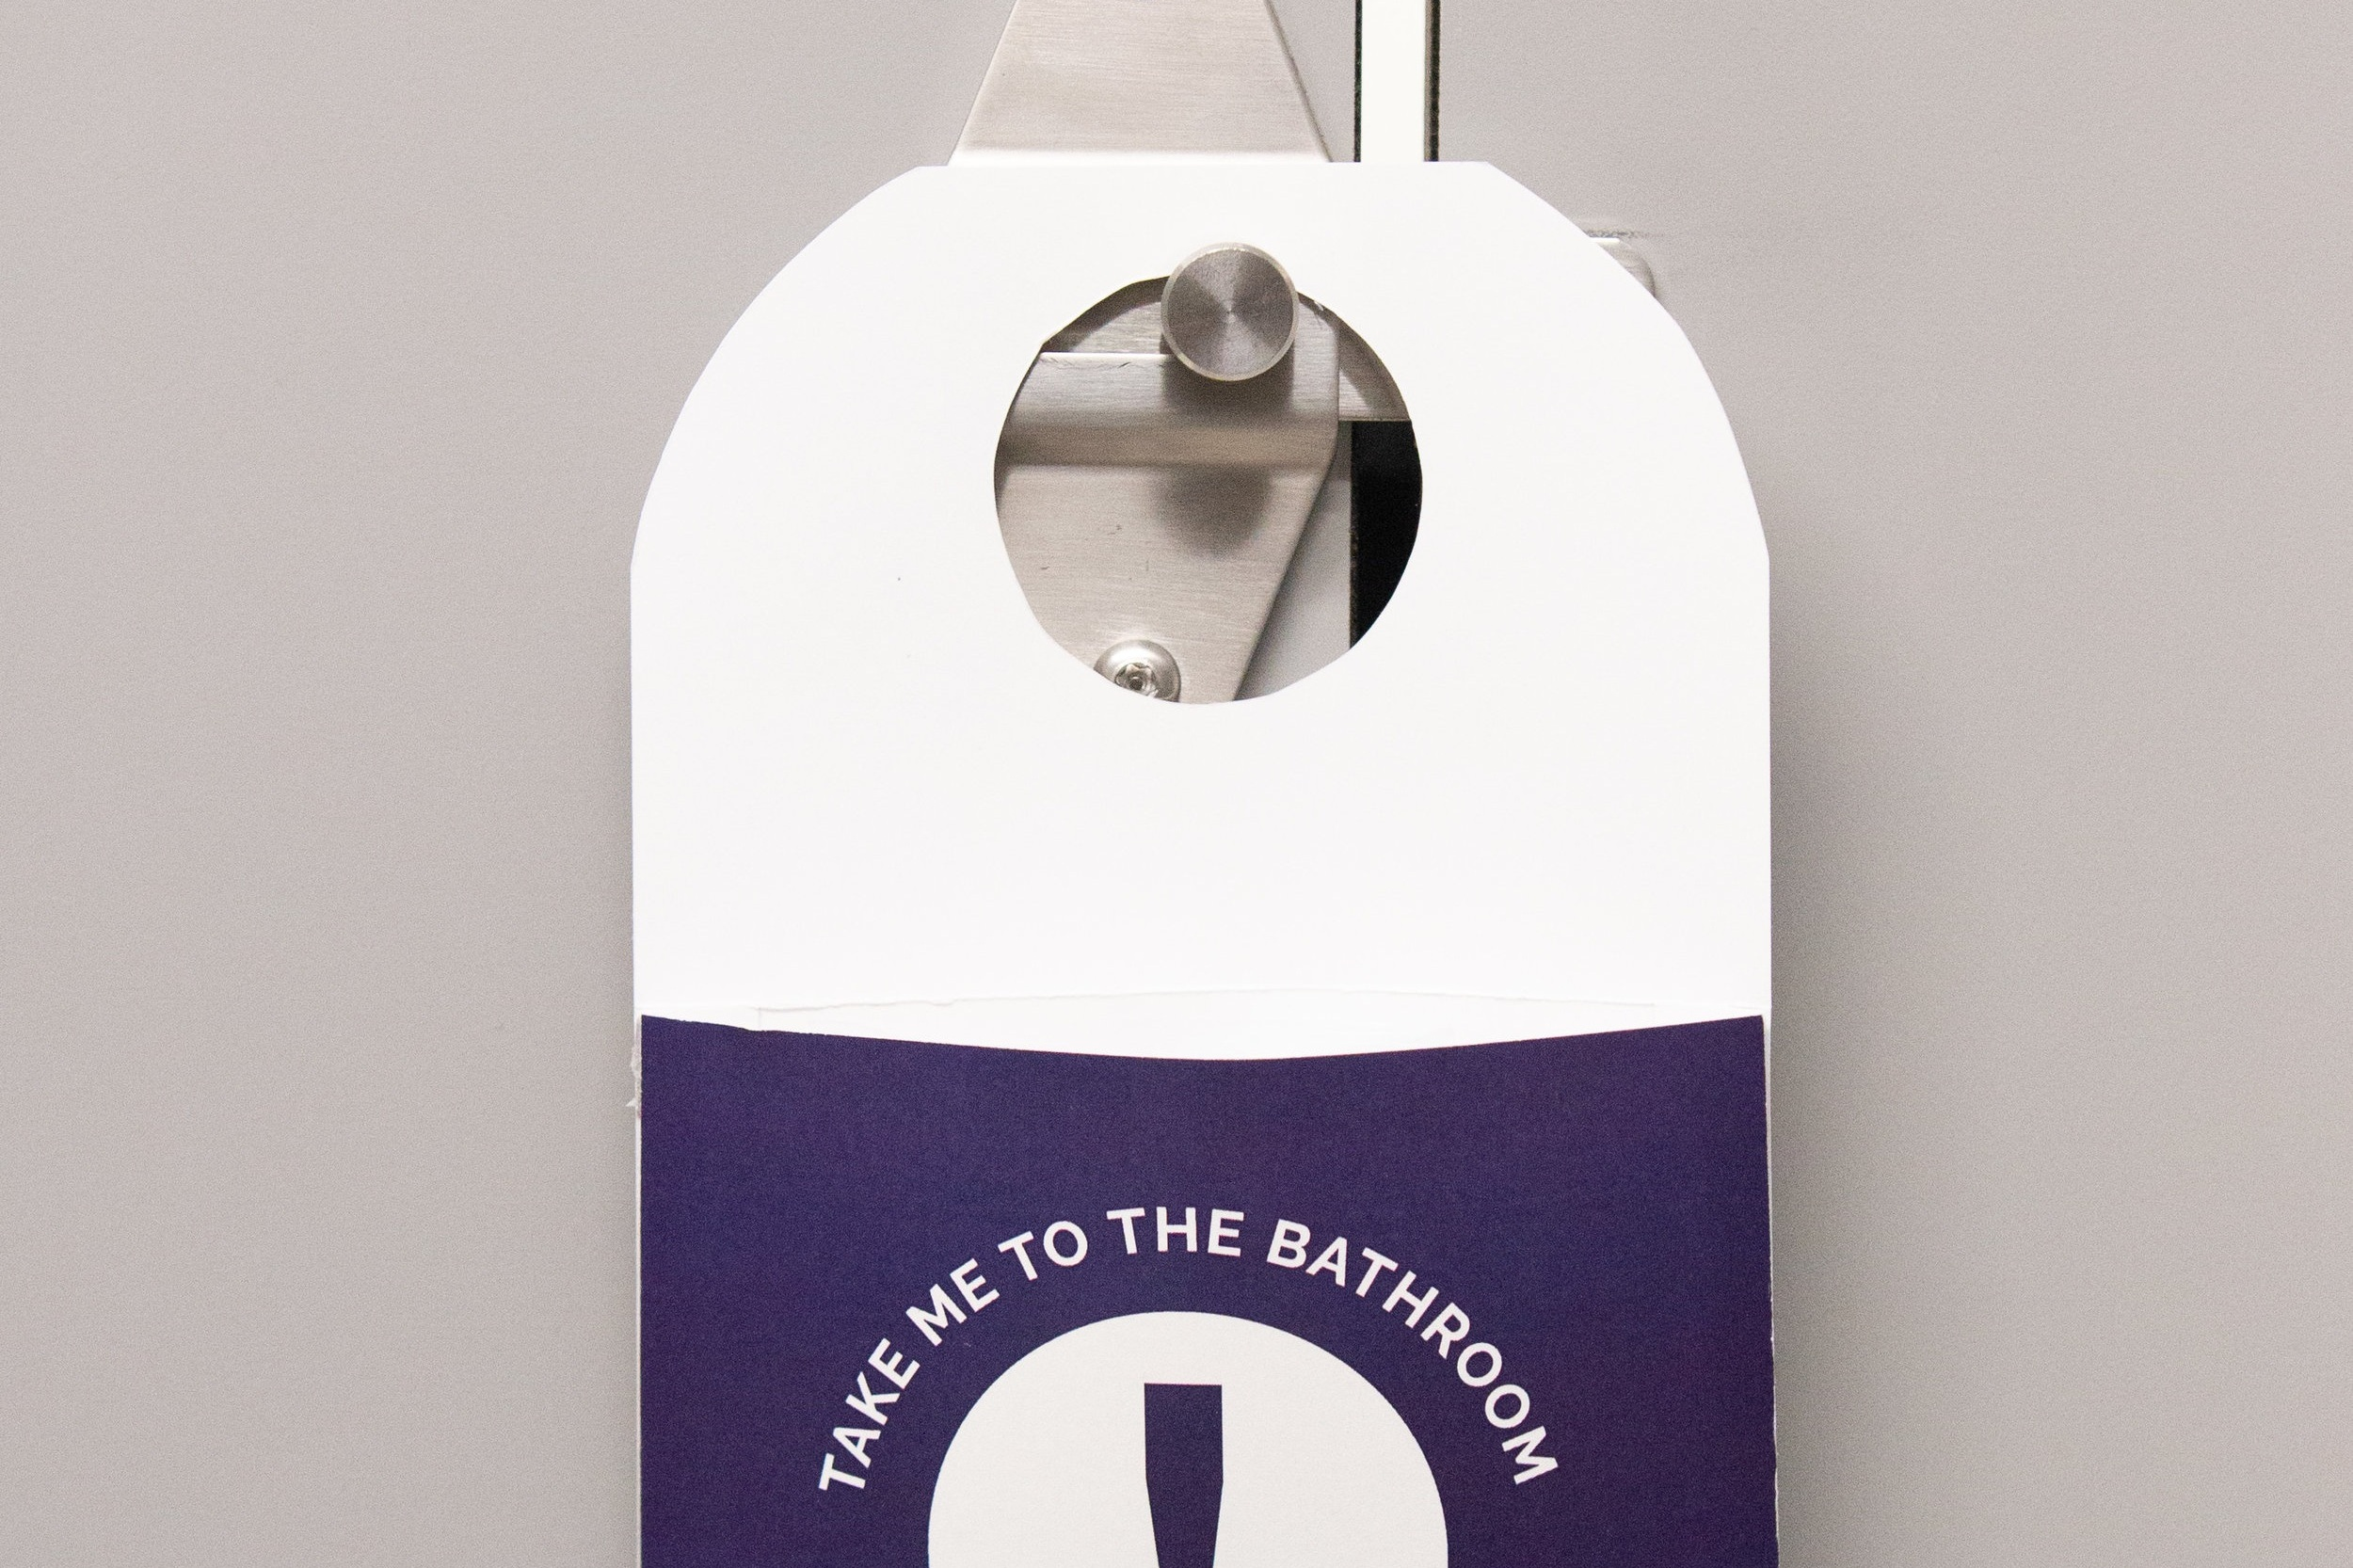 Hanger can easily hang on bathroom door with test contents